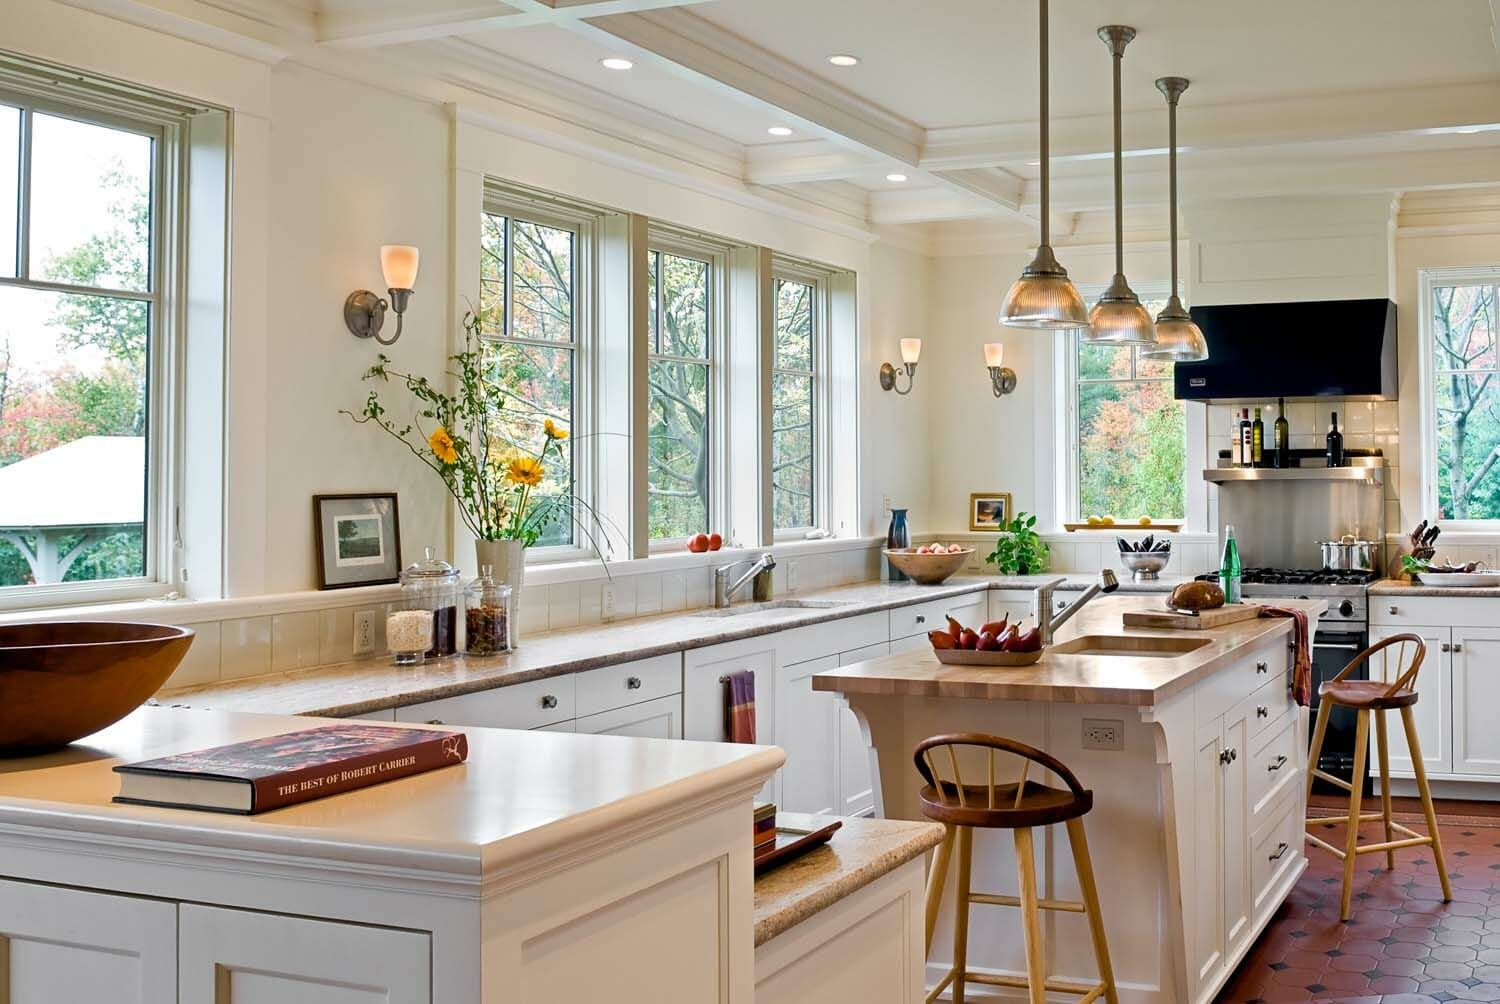 Home Tour Shingle Style Home In New Hampshire With Inviting Touches Kitchens Without Upper Cabinets Kitchen Layout Kitchen Design